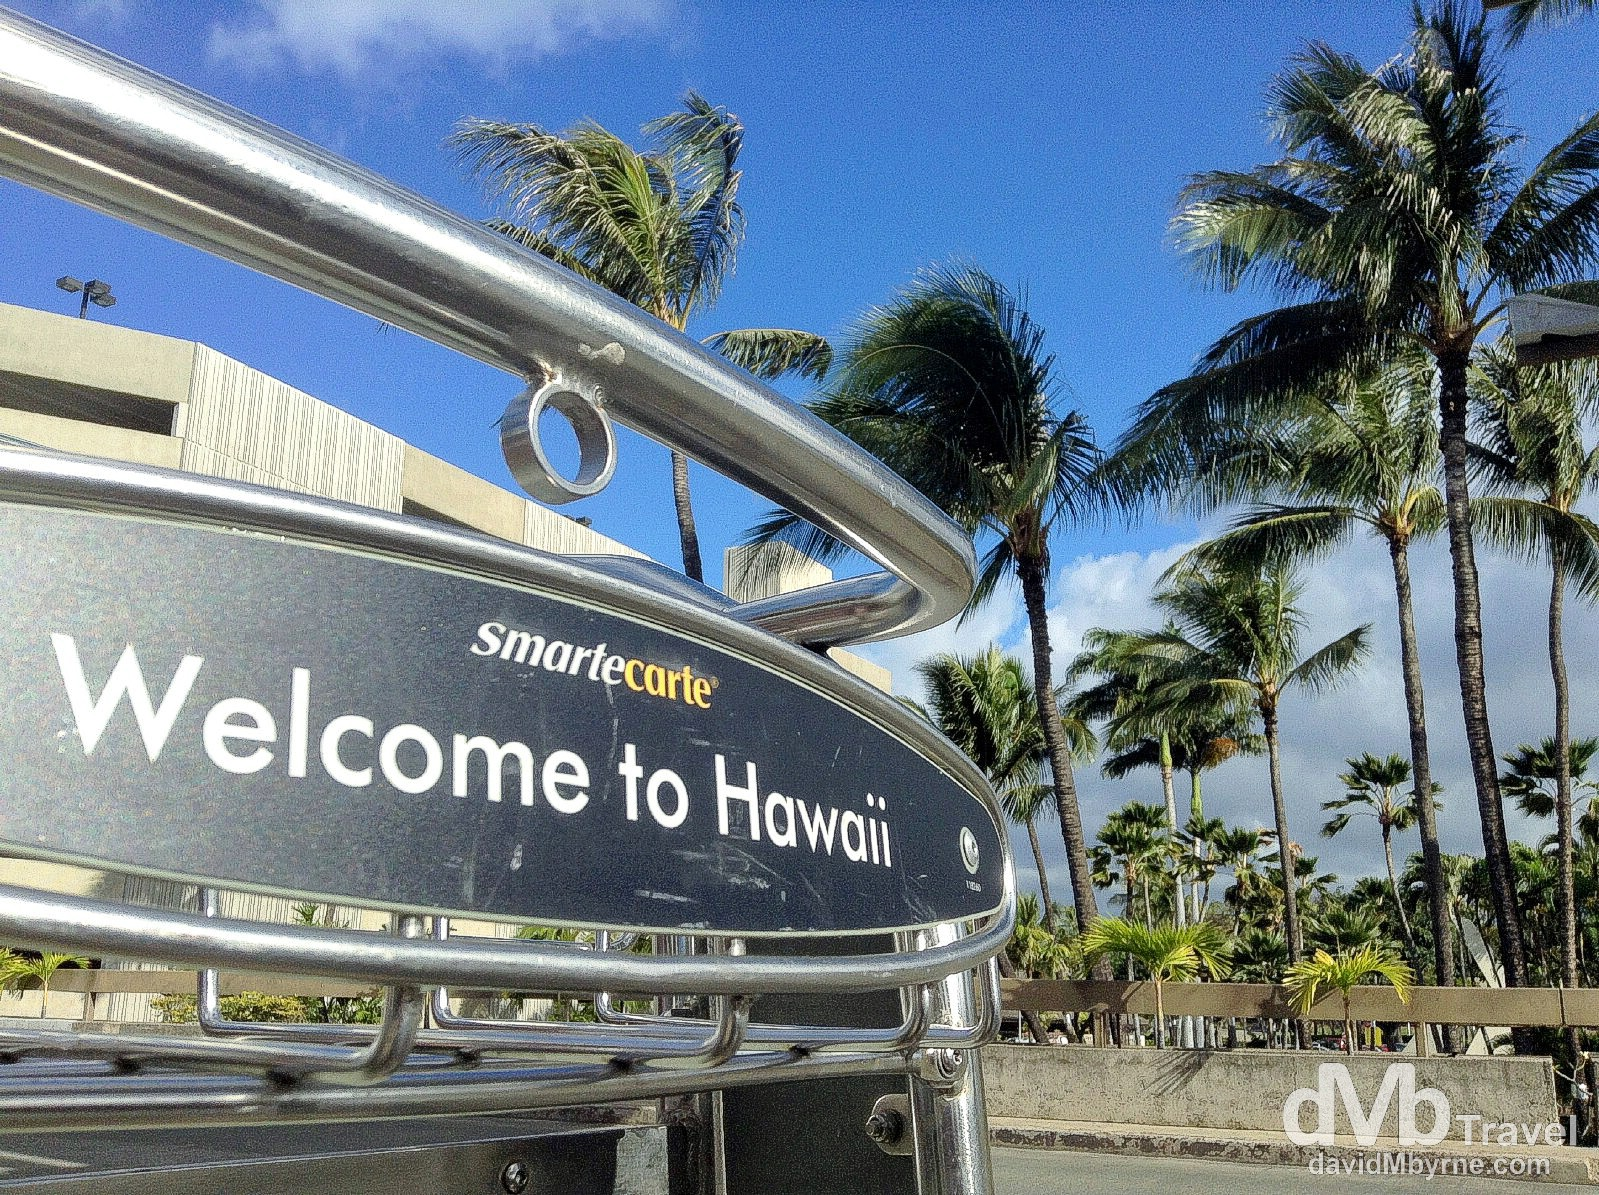 Welcome to Hawaii. It's good to be back. Waiting for the bus into Waikiki at Honolulu International Airport, Oahu, Hawaii. February 26th 2013 (iPod)